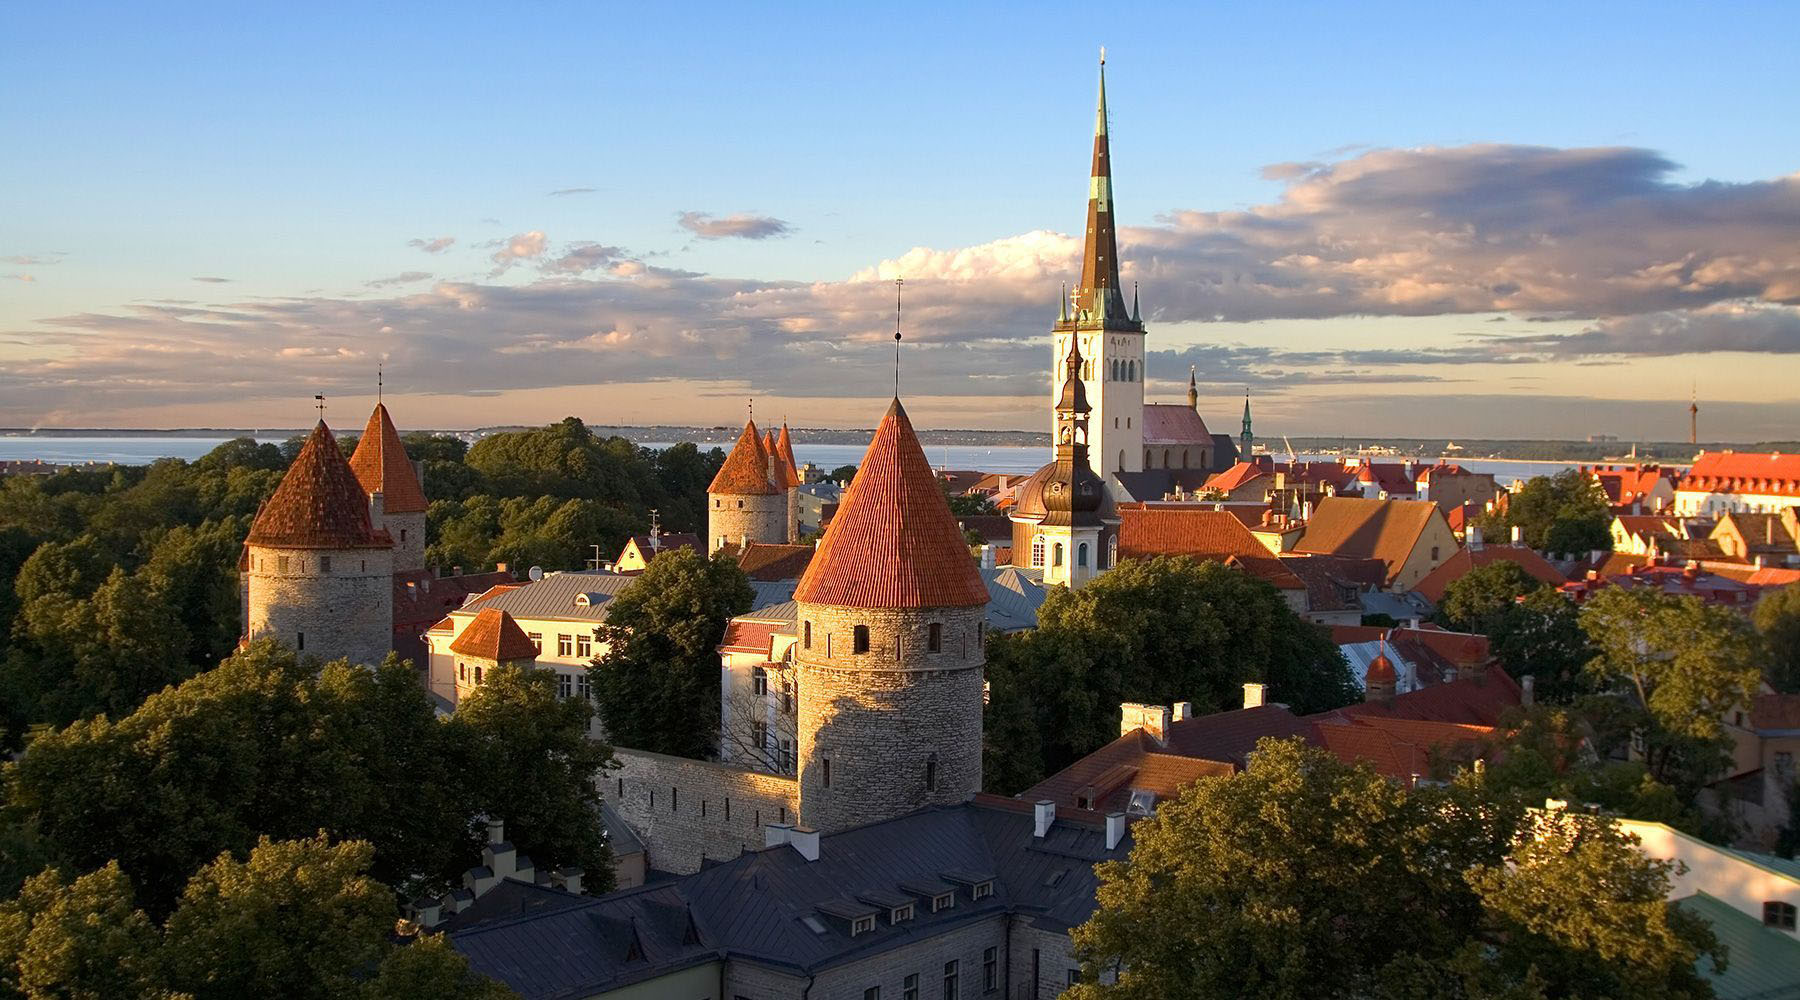 The iconic red tiled roofs of Tallinn, Estonia